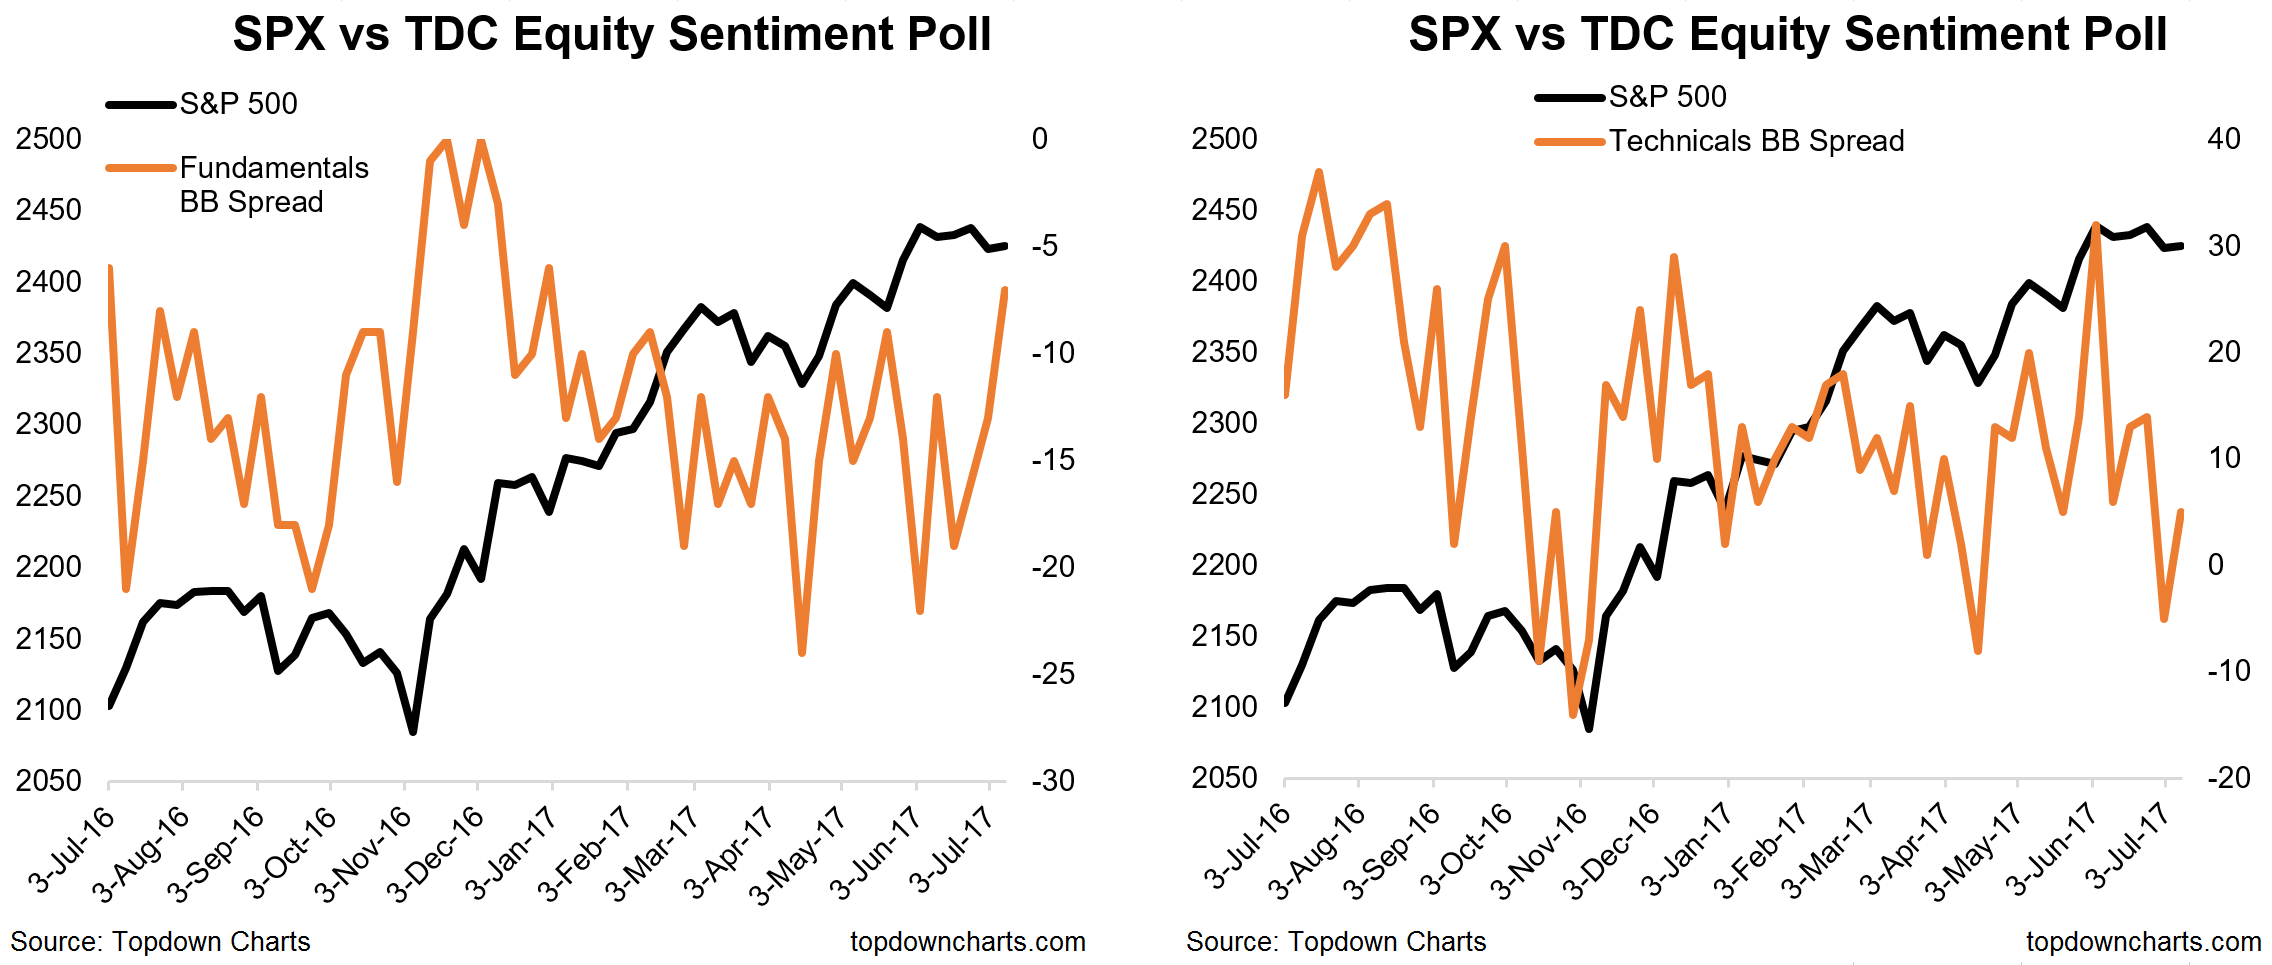 Bond market sentiment